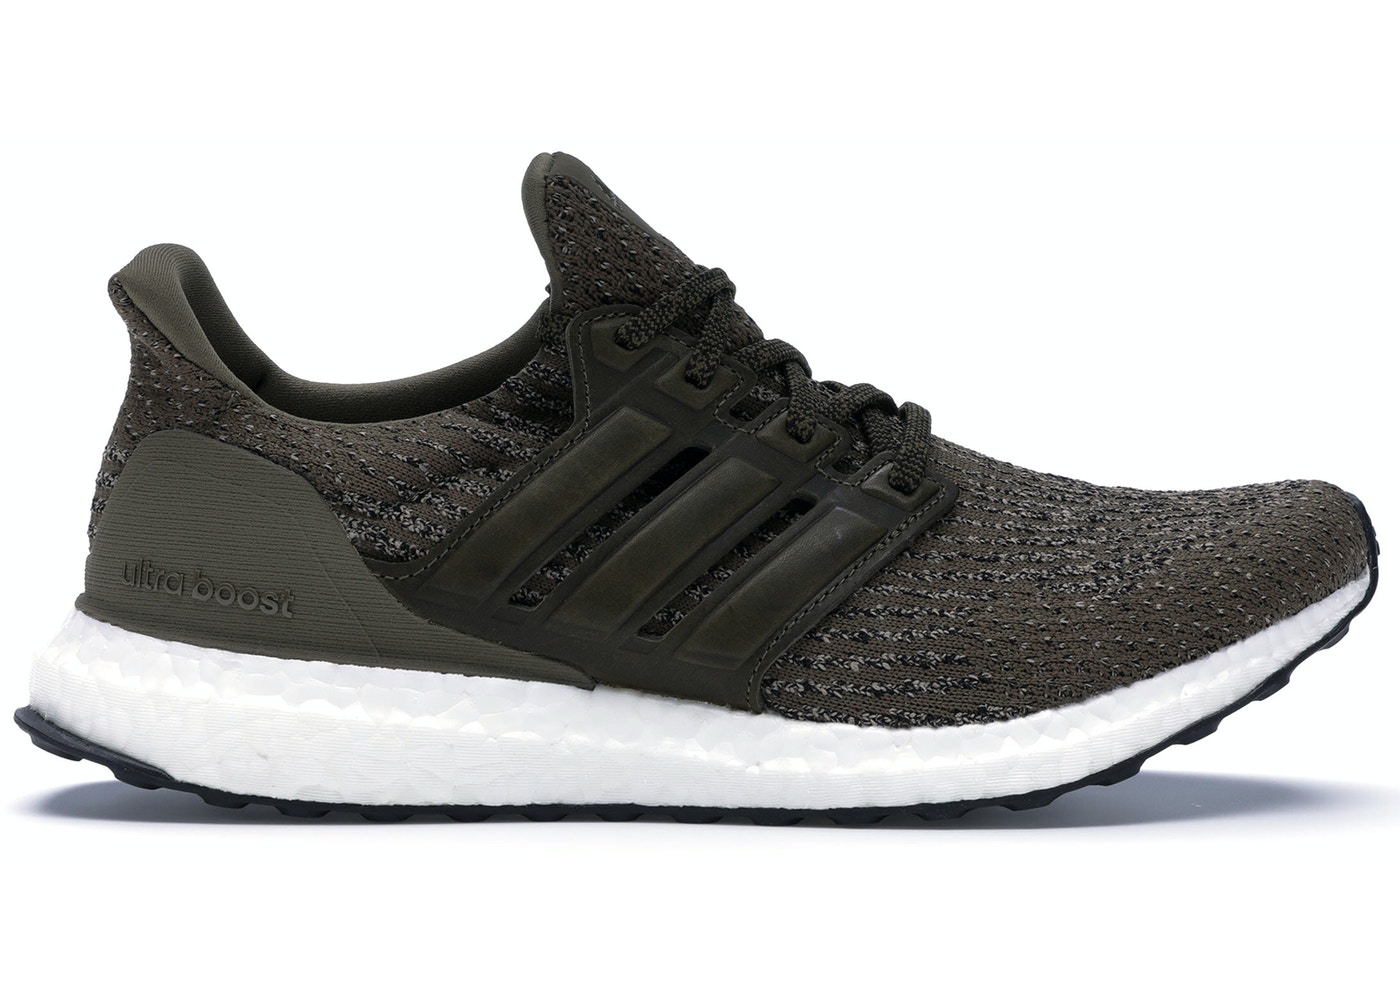 1c3509300 adidas Ultra Boost 3.0 Trace Olive - S82018